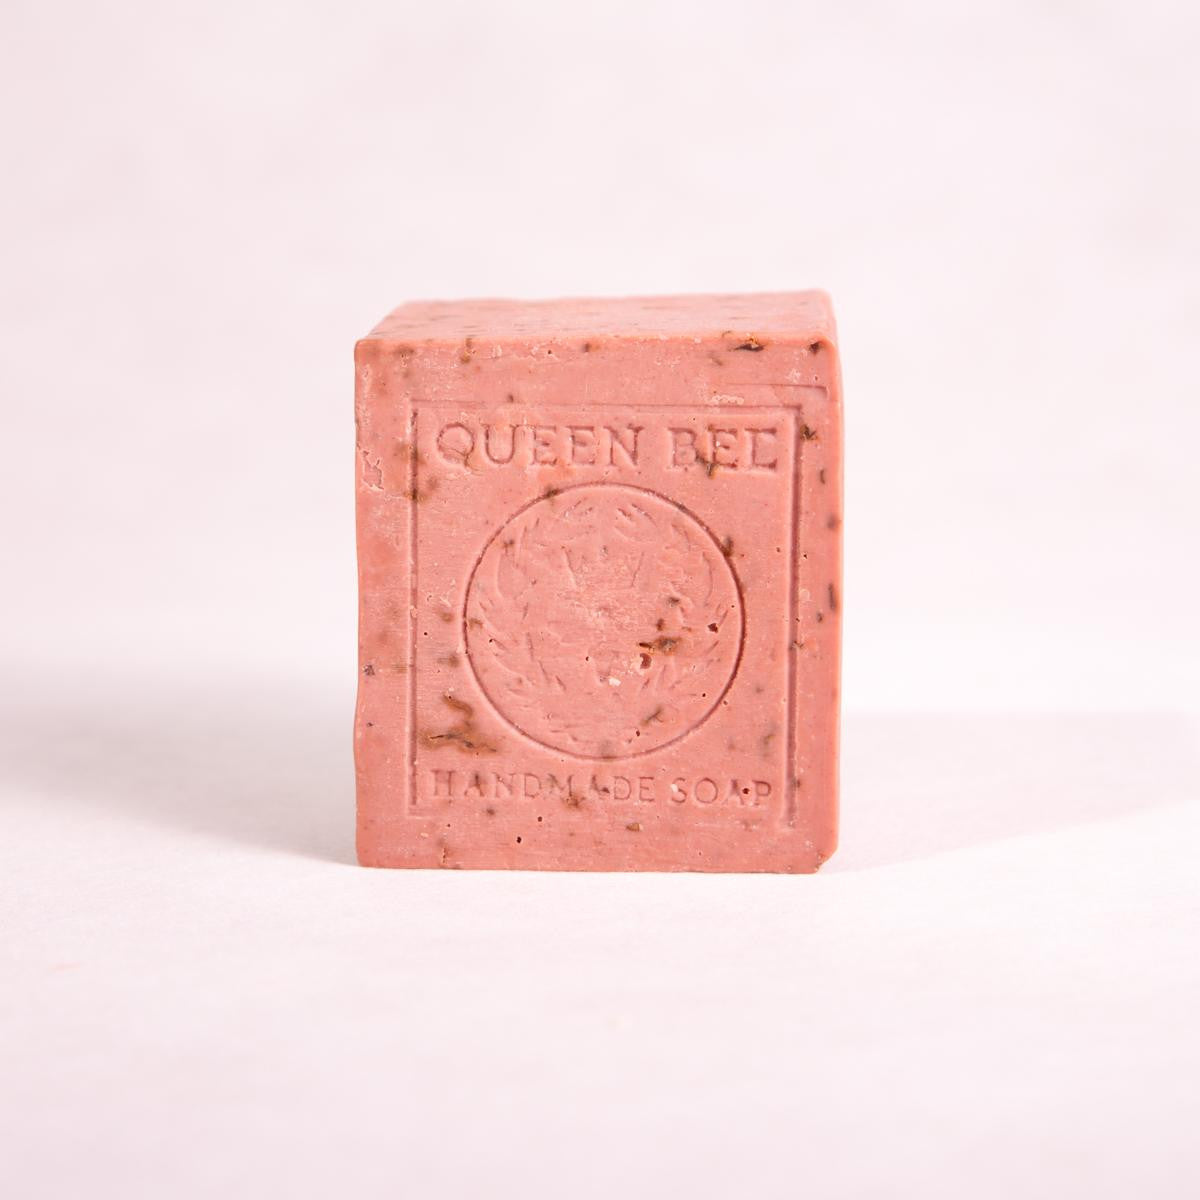 Rose Geranium, Lemon & Red Clay Block Soap - 170g approx - Block Soap - Throw Some Seeds - Australian gardening gifts and eco products online!